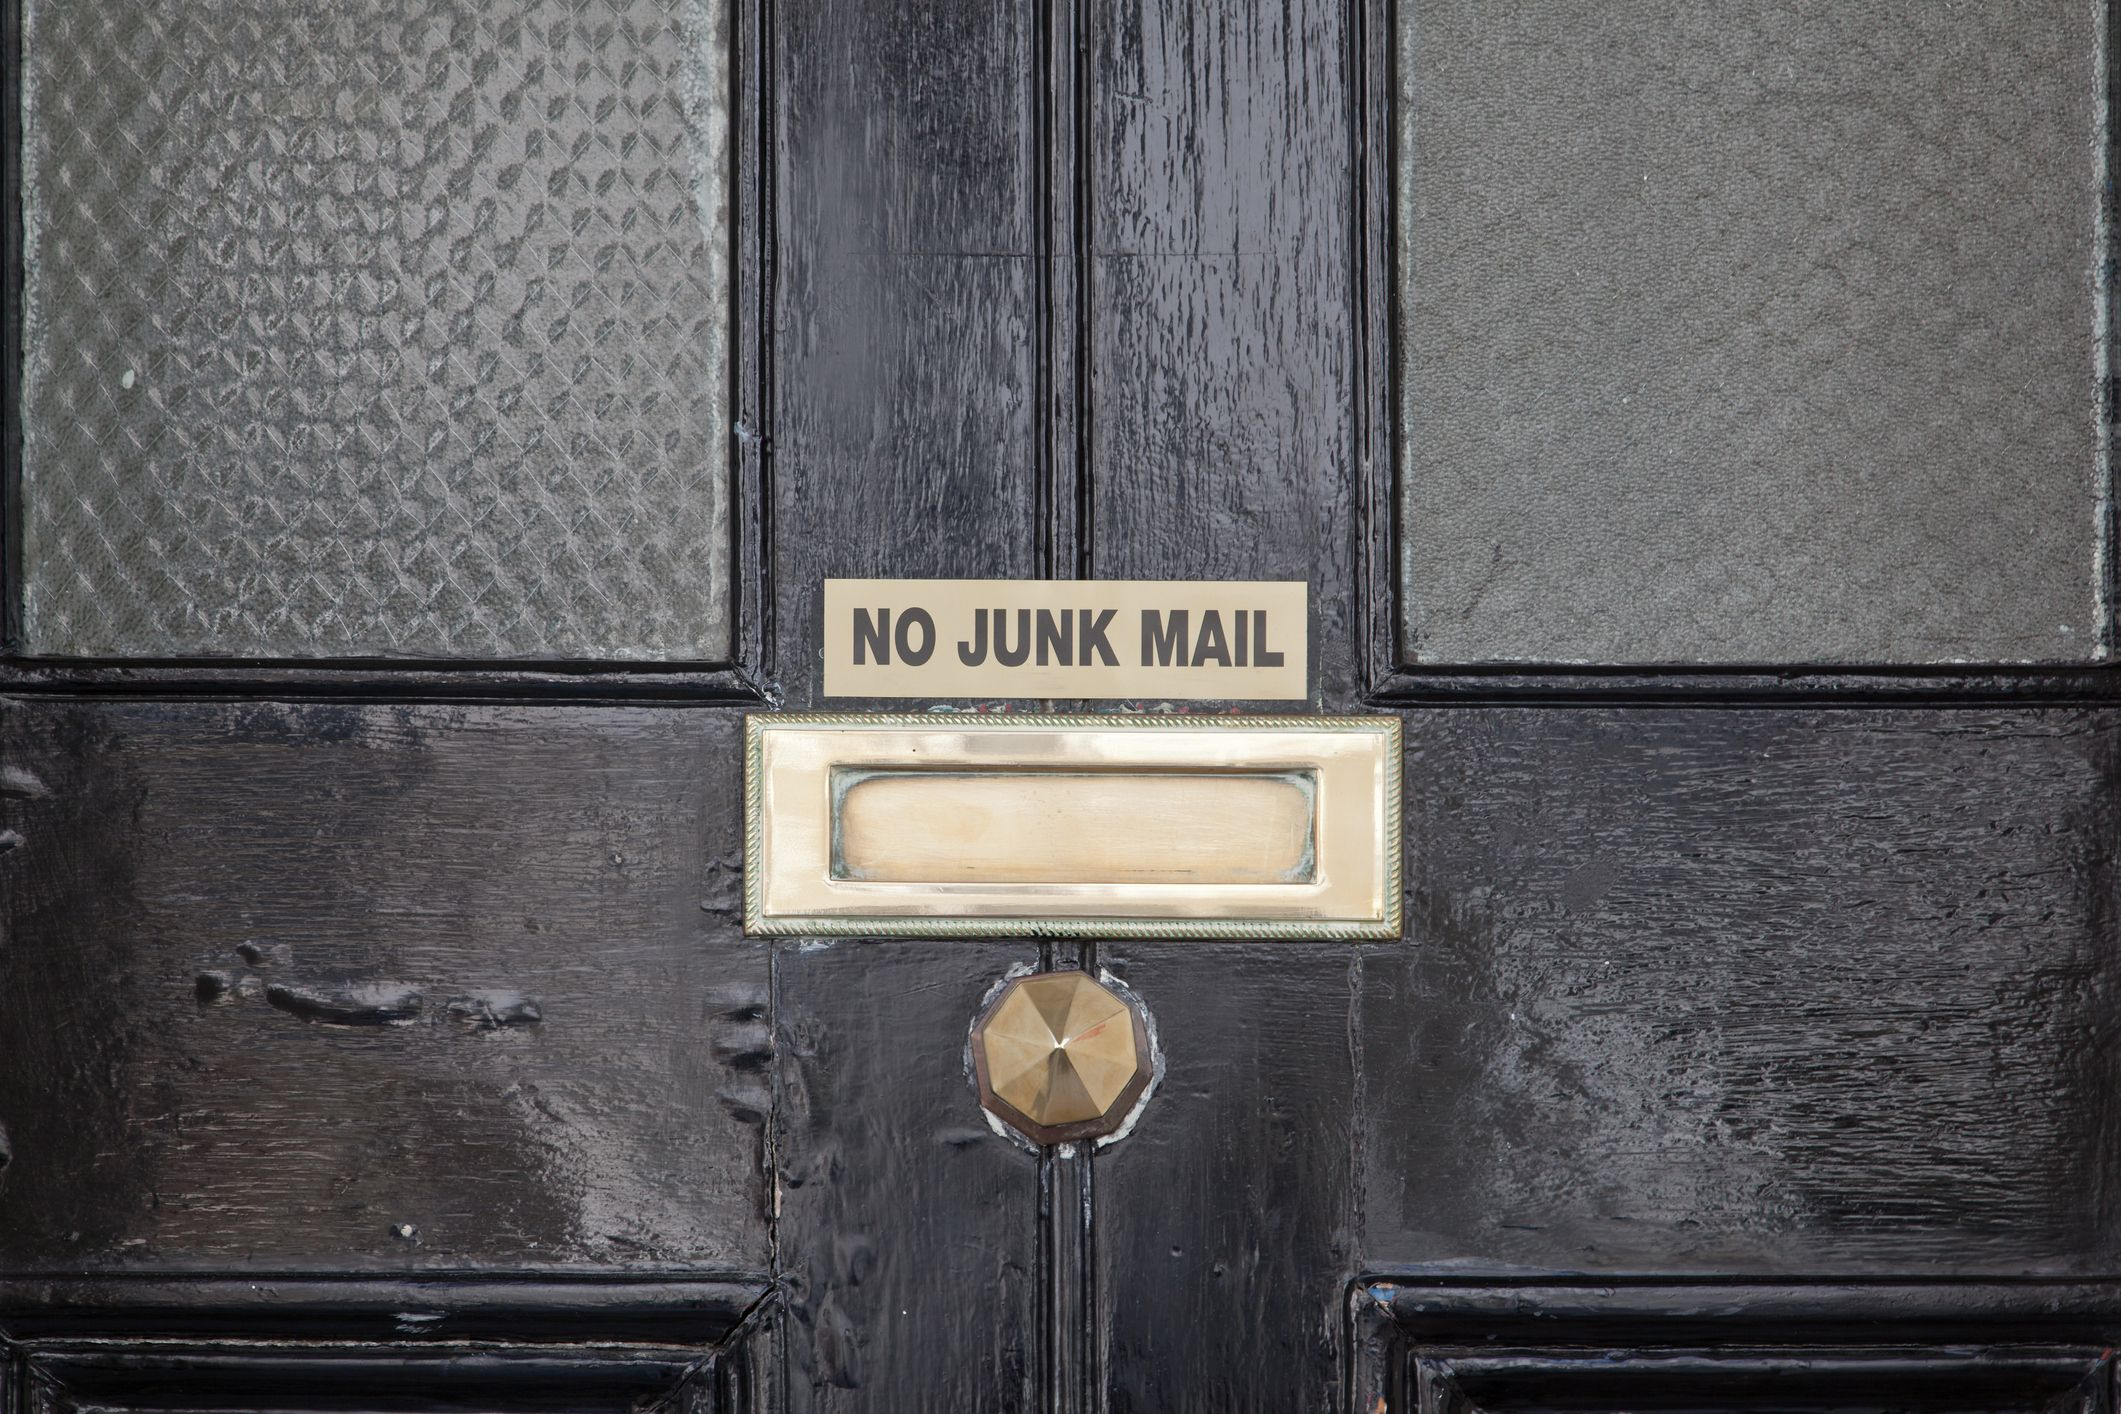 Things Every Mail Carrier Want You To Know - Postal Service Fun Facts